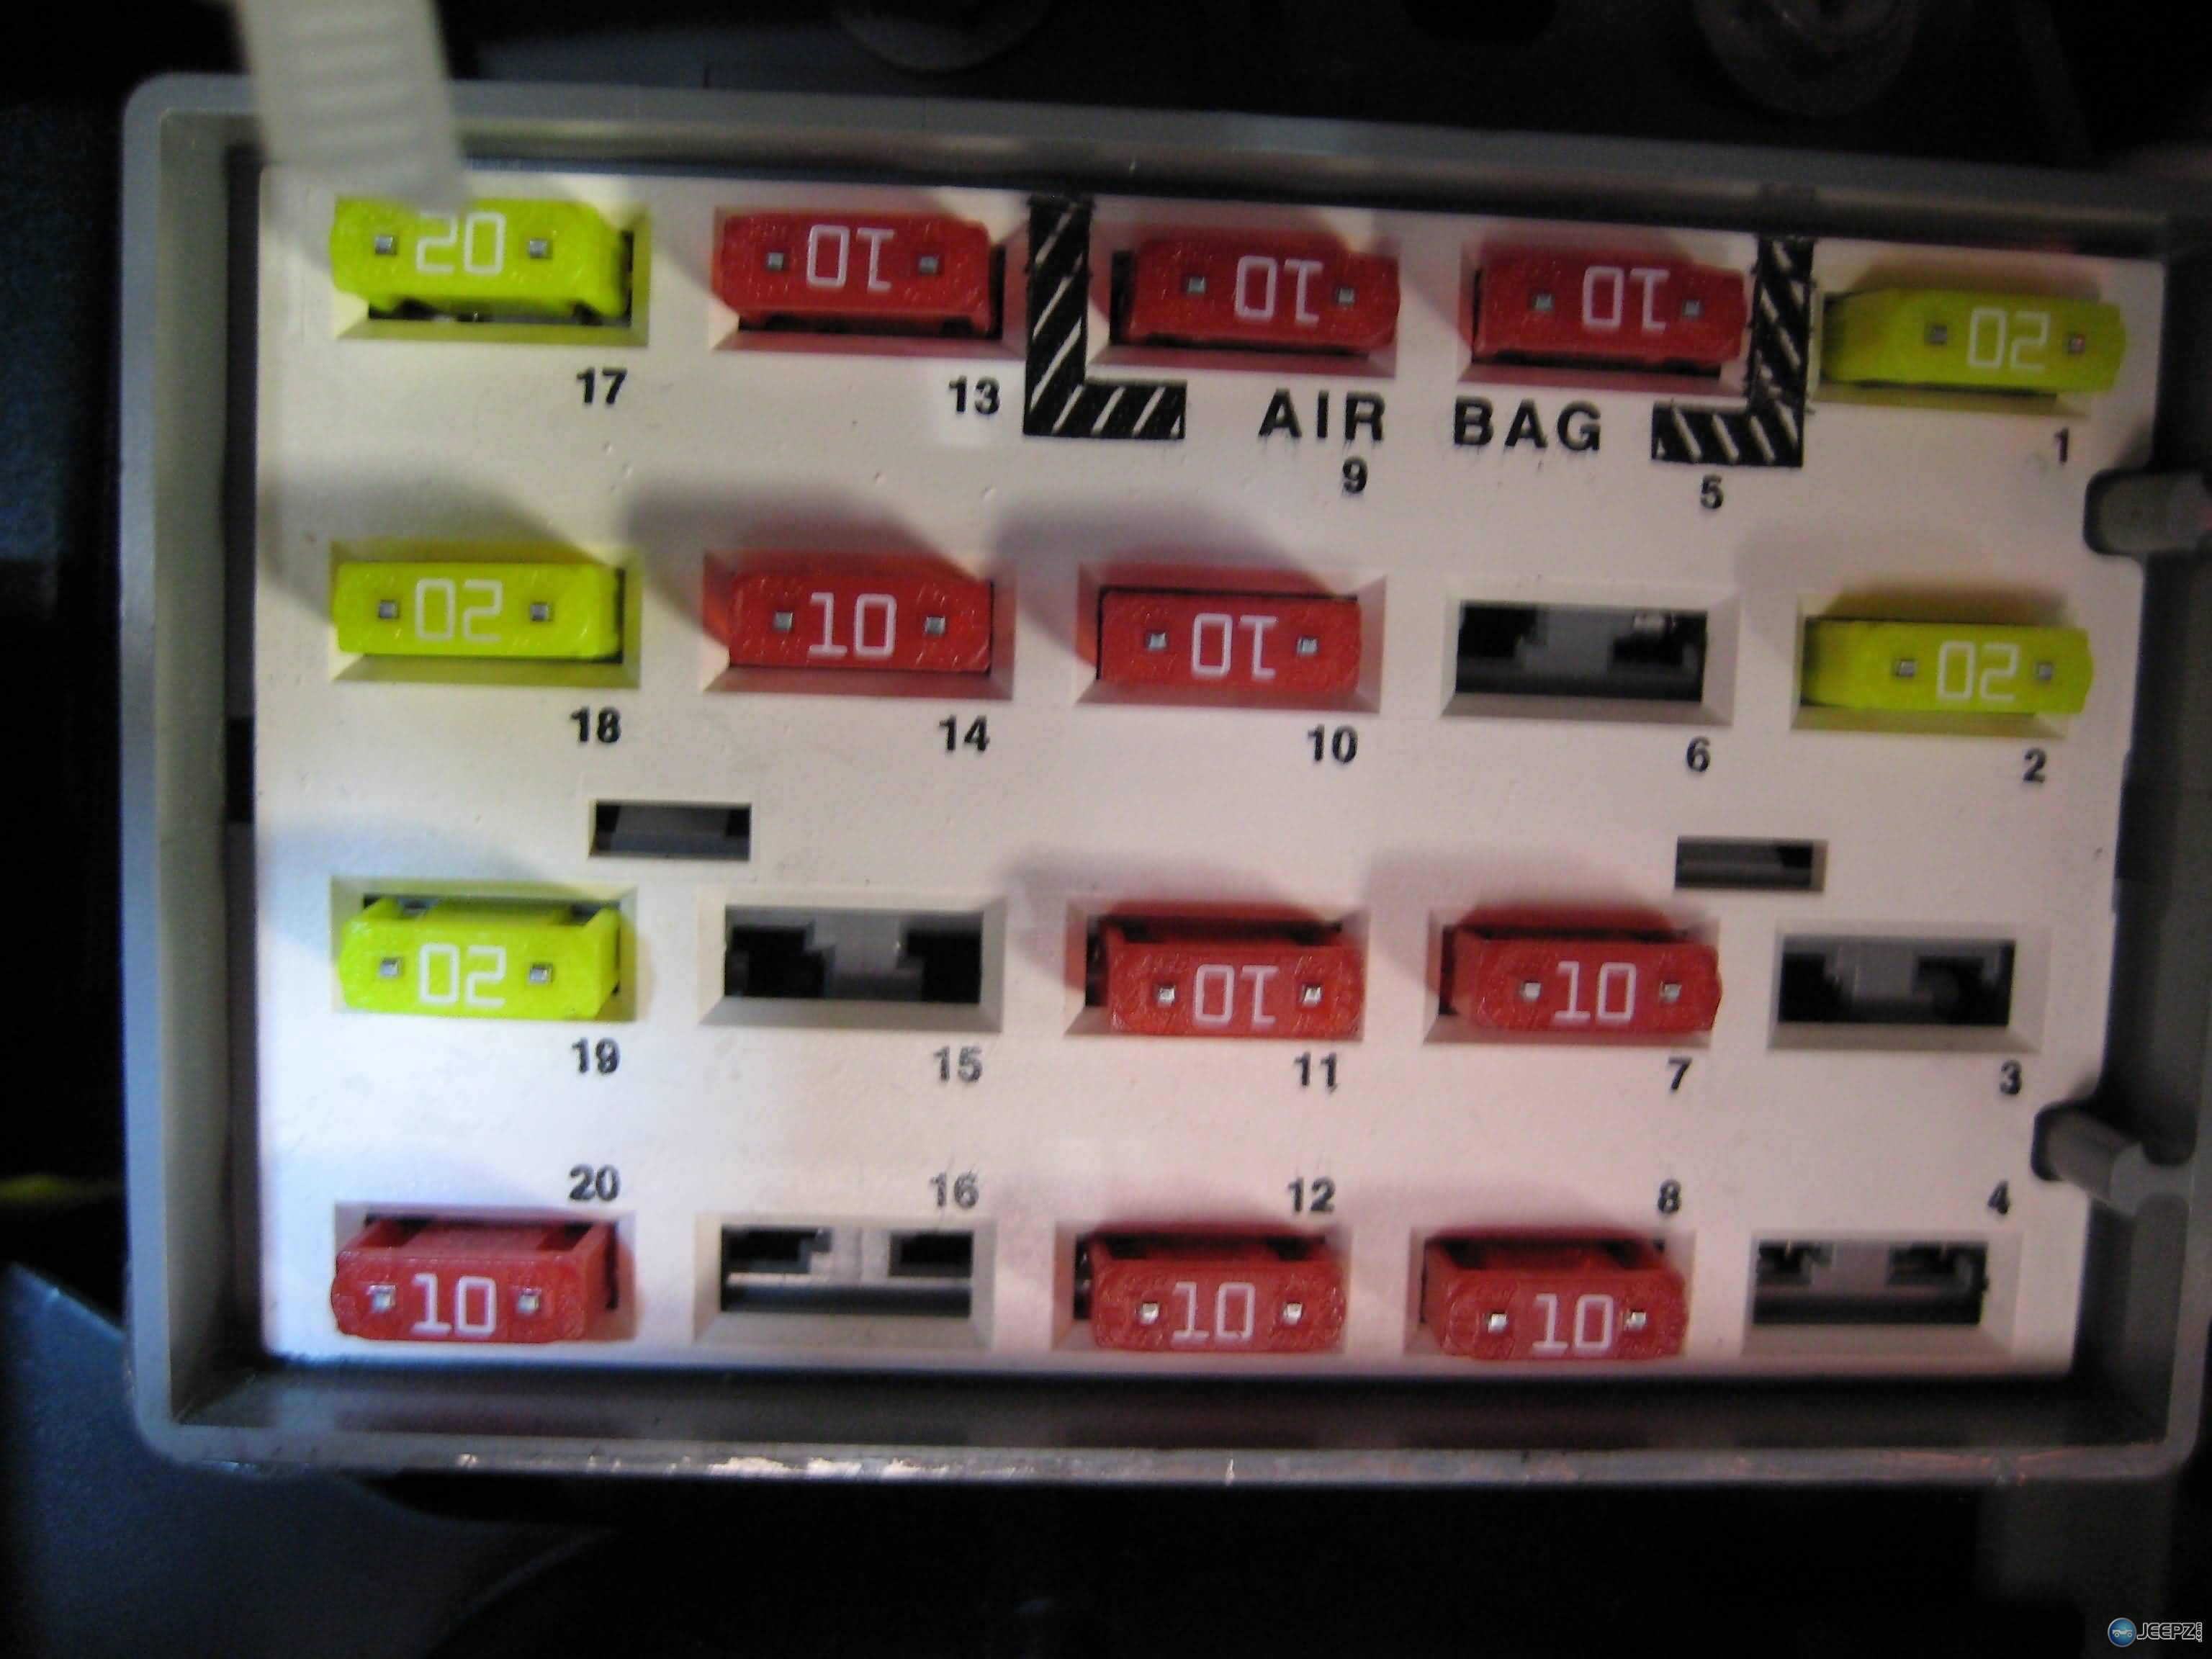 Jeep Jk Aux Fuse Box on jeep xj fuse box, jeep zj fuse box, jeep grand cherokee fuse box, 2014 jeep compass fuse box, isuzu fuse box, jeep cj7 fuse box, 1997 jeep cherokee fuse box, 2014 wrangler fuse box, jeep commander fuse box, 2007 jeep fuse box, 2014 jeep cherokee fuse box, jeep yj fuse box, toyota fuse box, dodge fuse box, jeep liberty fuse box, jeep laredo fuse box, jeep wrangler fuse box, jeep cj5 fuse box, jeep wrangler fuse location, honda fuse box,